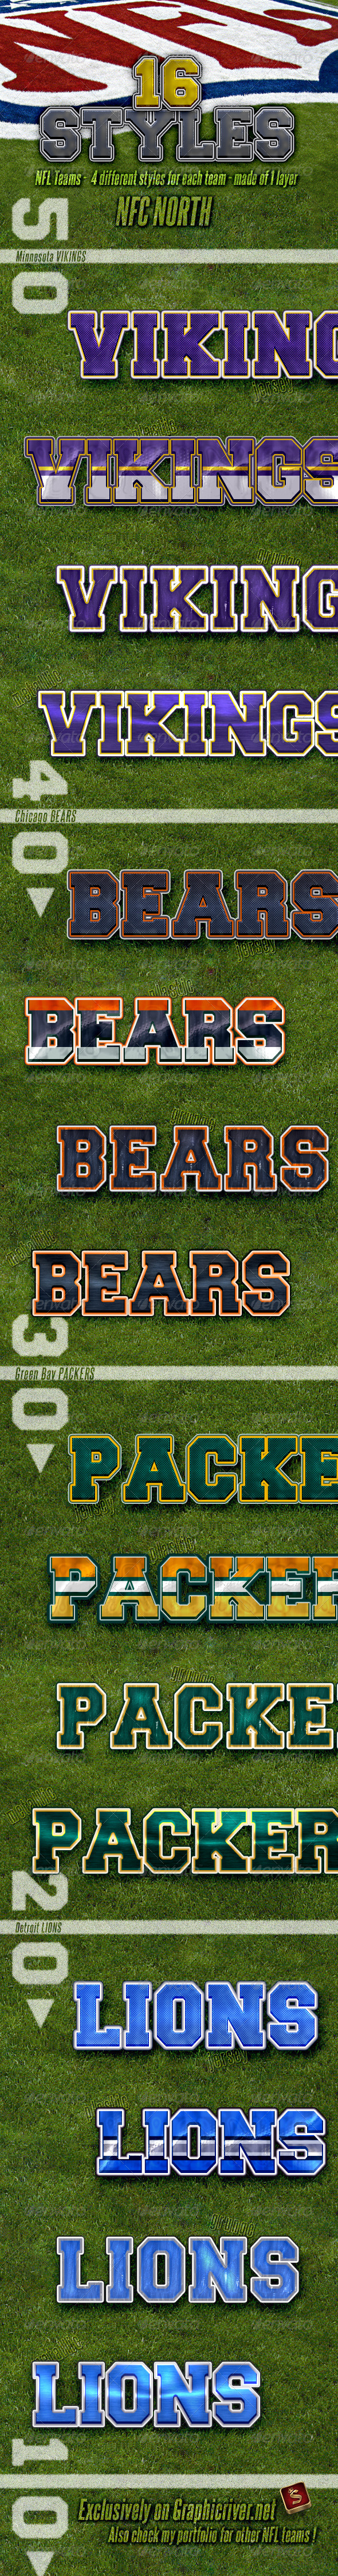 NFL Football Styles - NFC North - Styles Photoshop